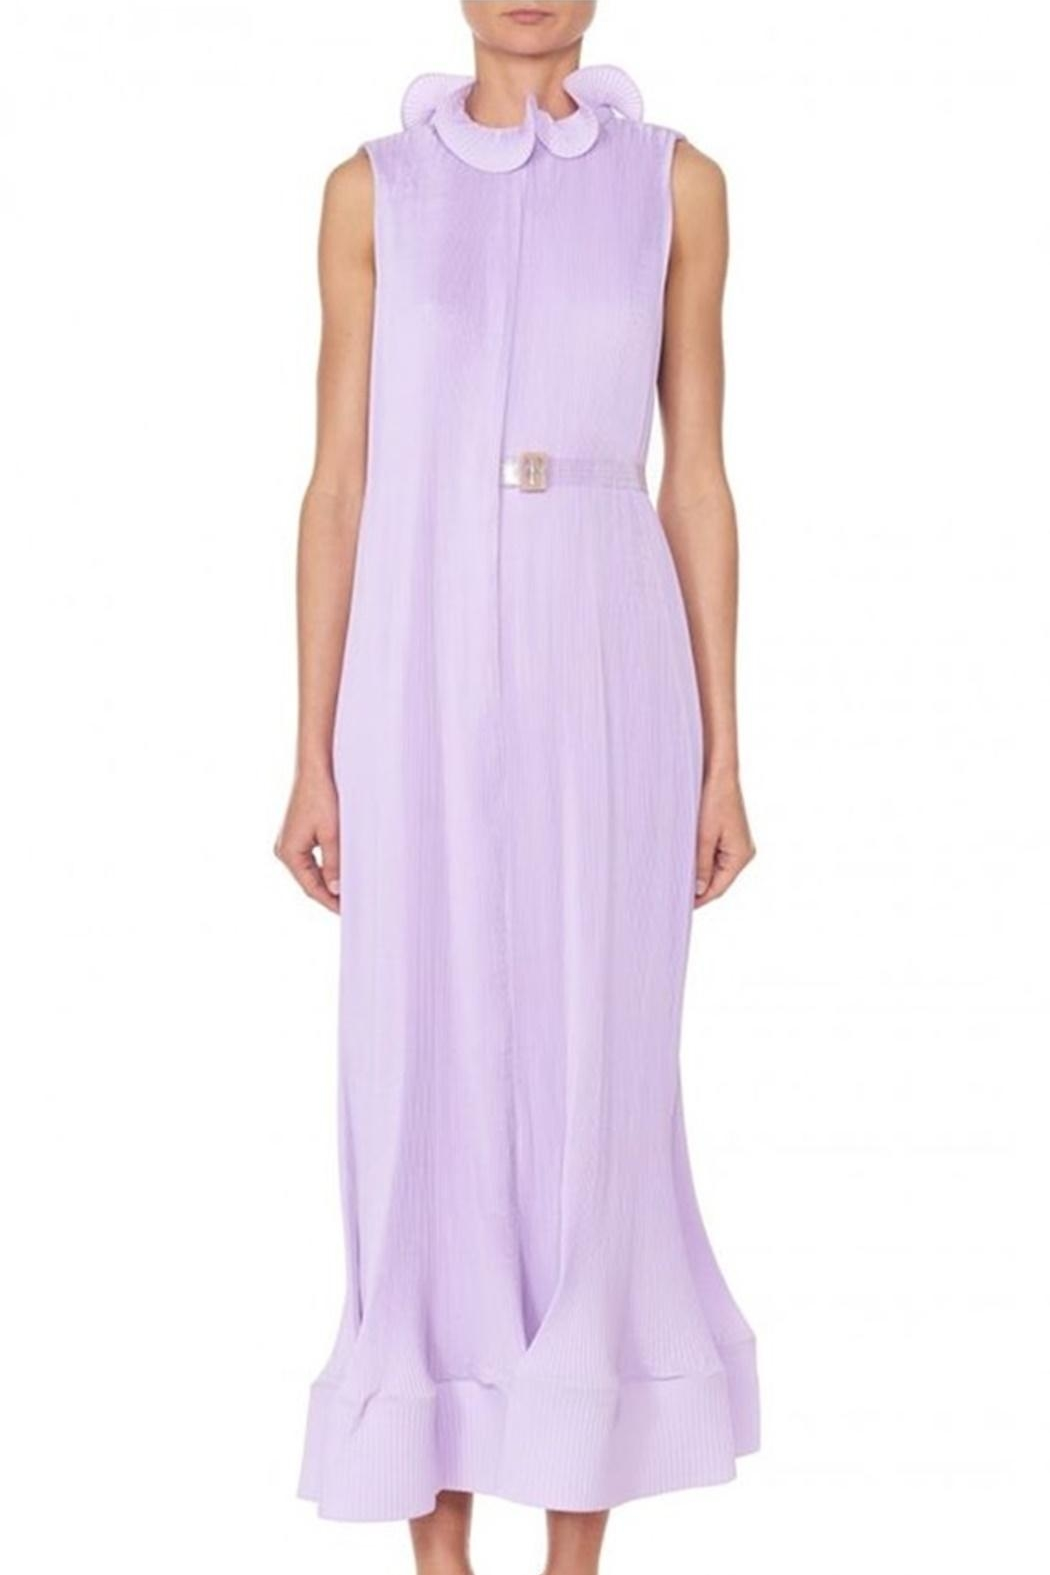 Tibi Pleating Sleeveless Dress - Main Image